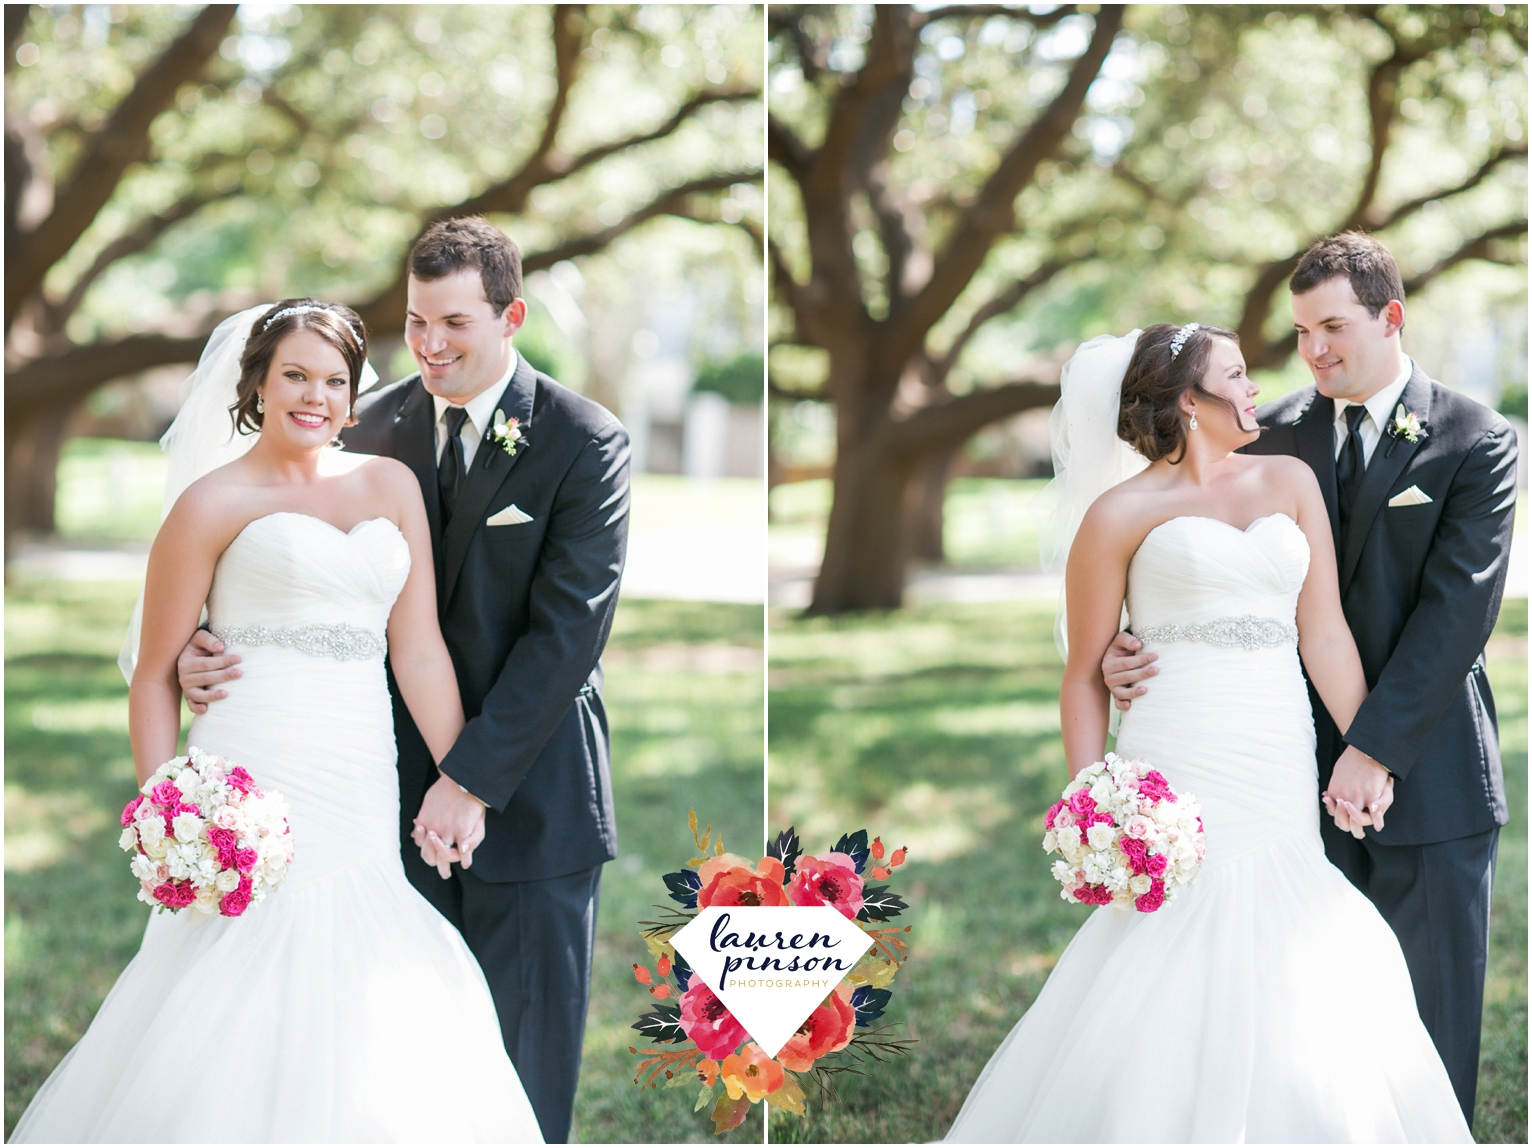 wichita-falls-wedding-photographer-kemp-center-at-the-forum-photography-two-clever-chicks_1006.jpg